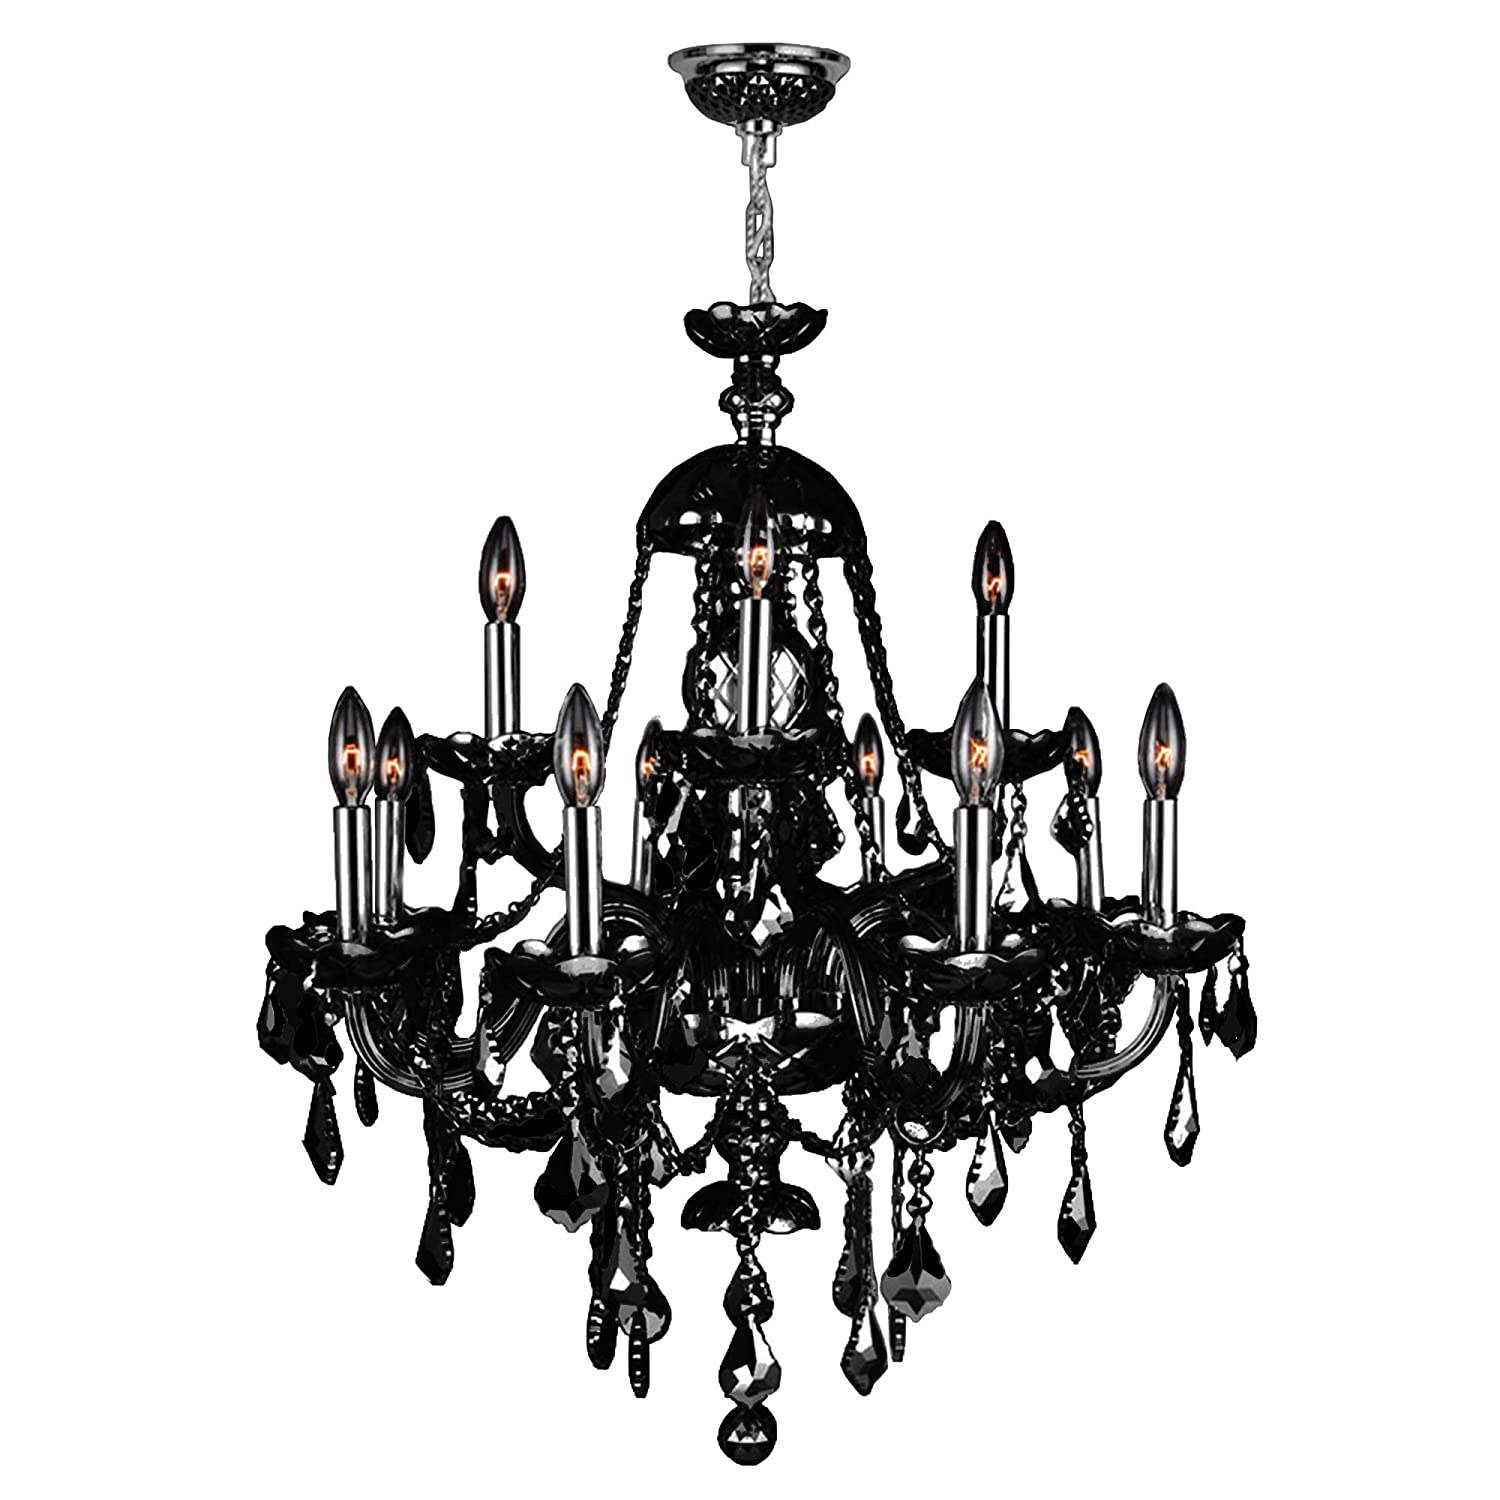 Worldwide Lighting Provence Collection 12 Light Chrome Finish and Black Crystal Chandelier 28 D x 31 H Two 2 Tier Large